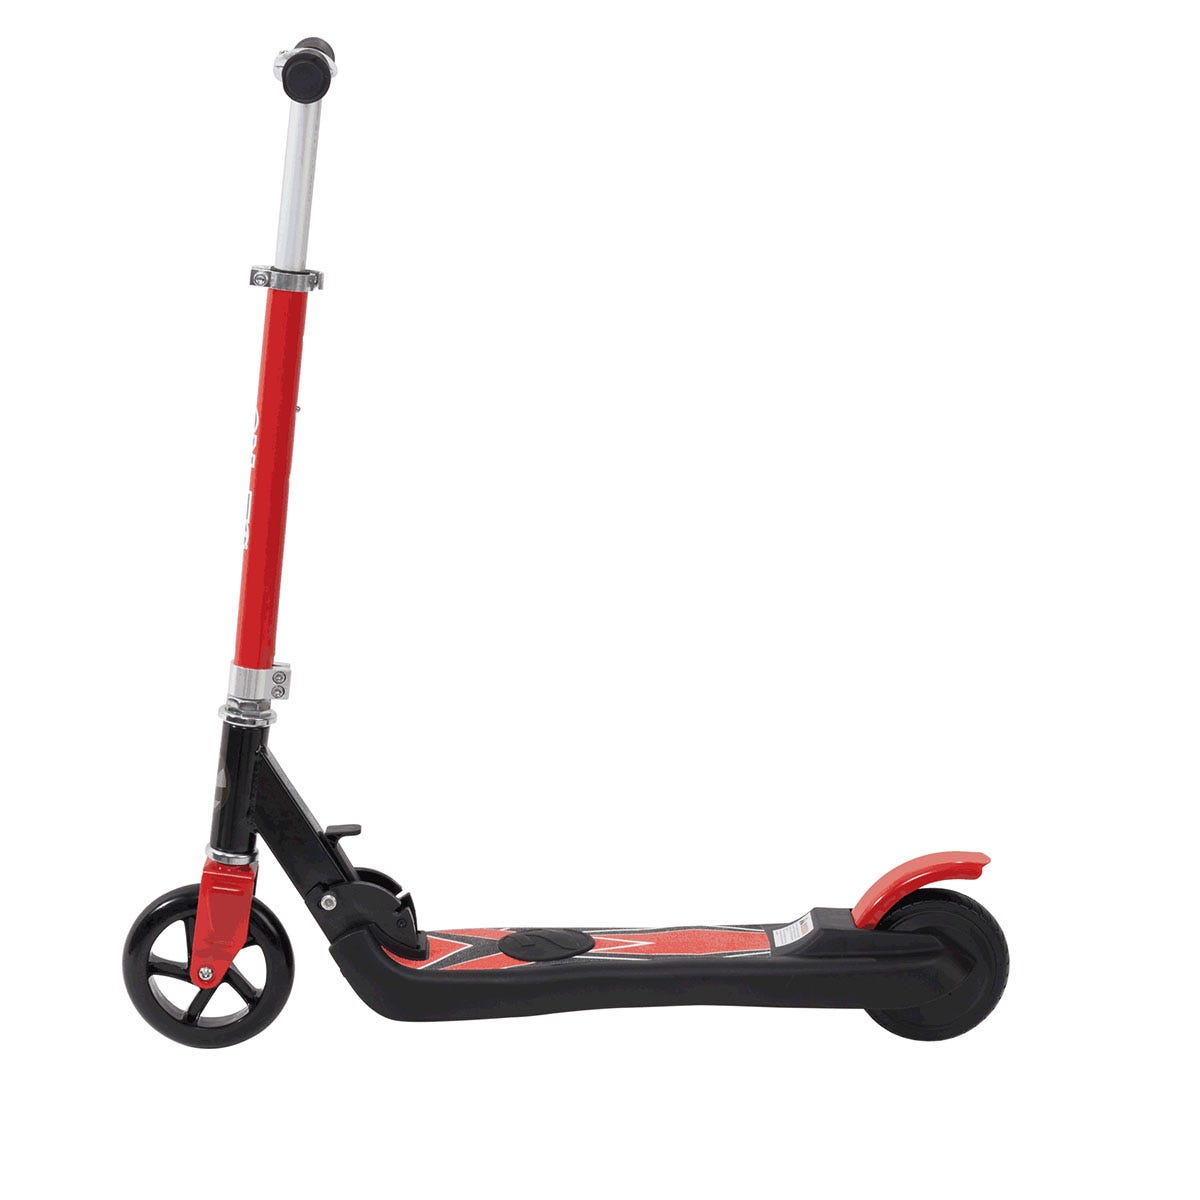 Zinc E4 Electric Scooter - Red